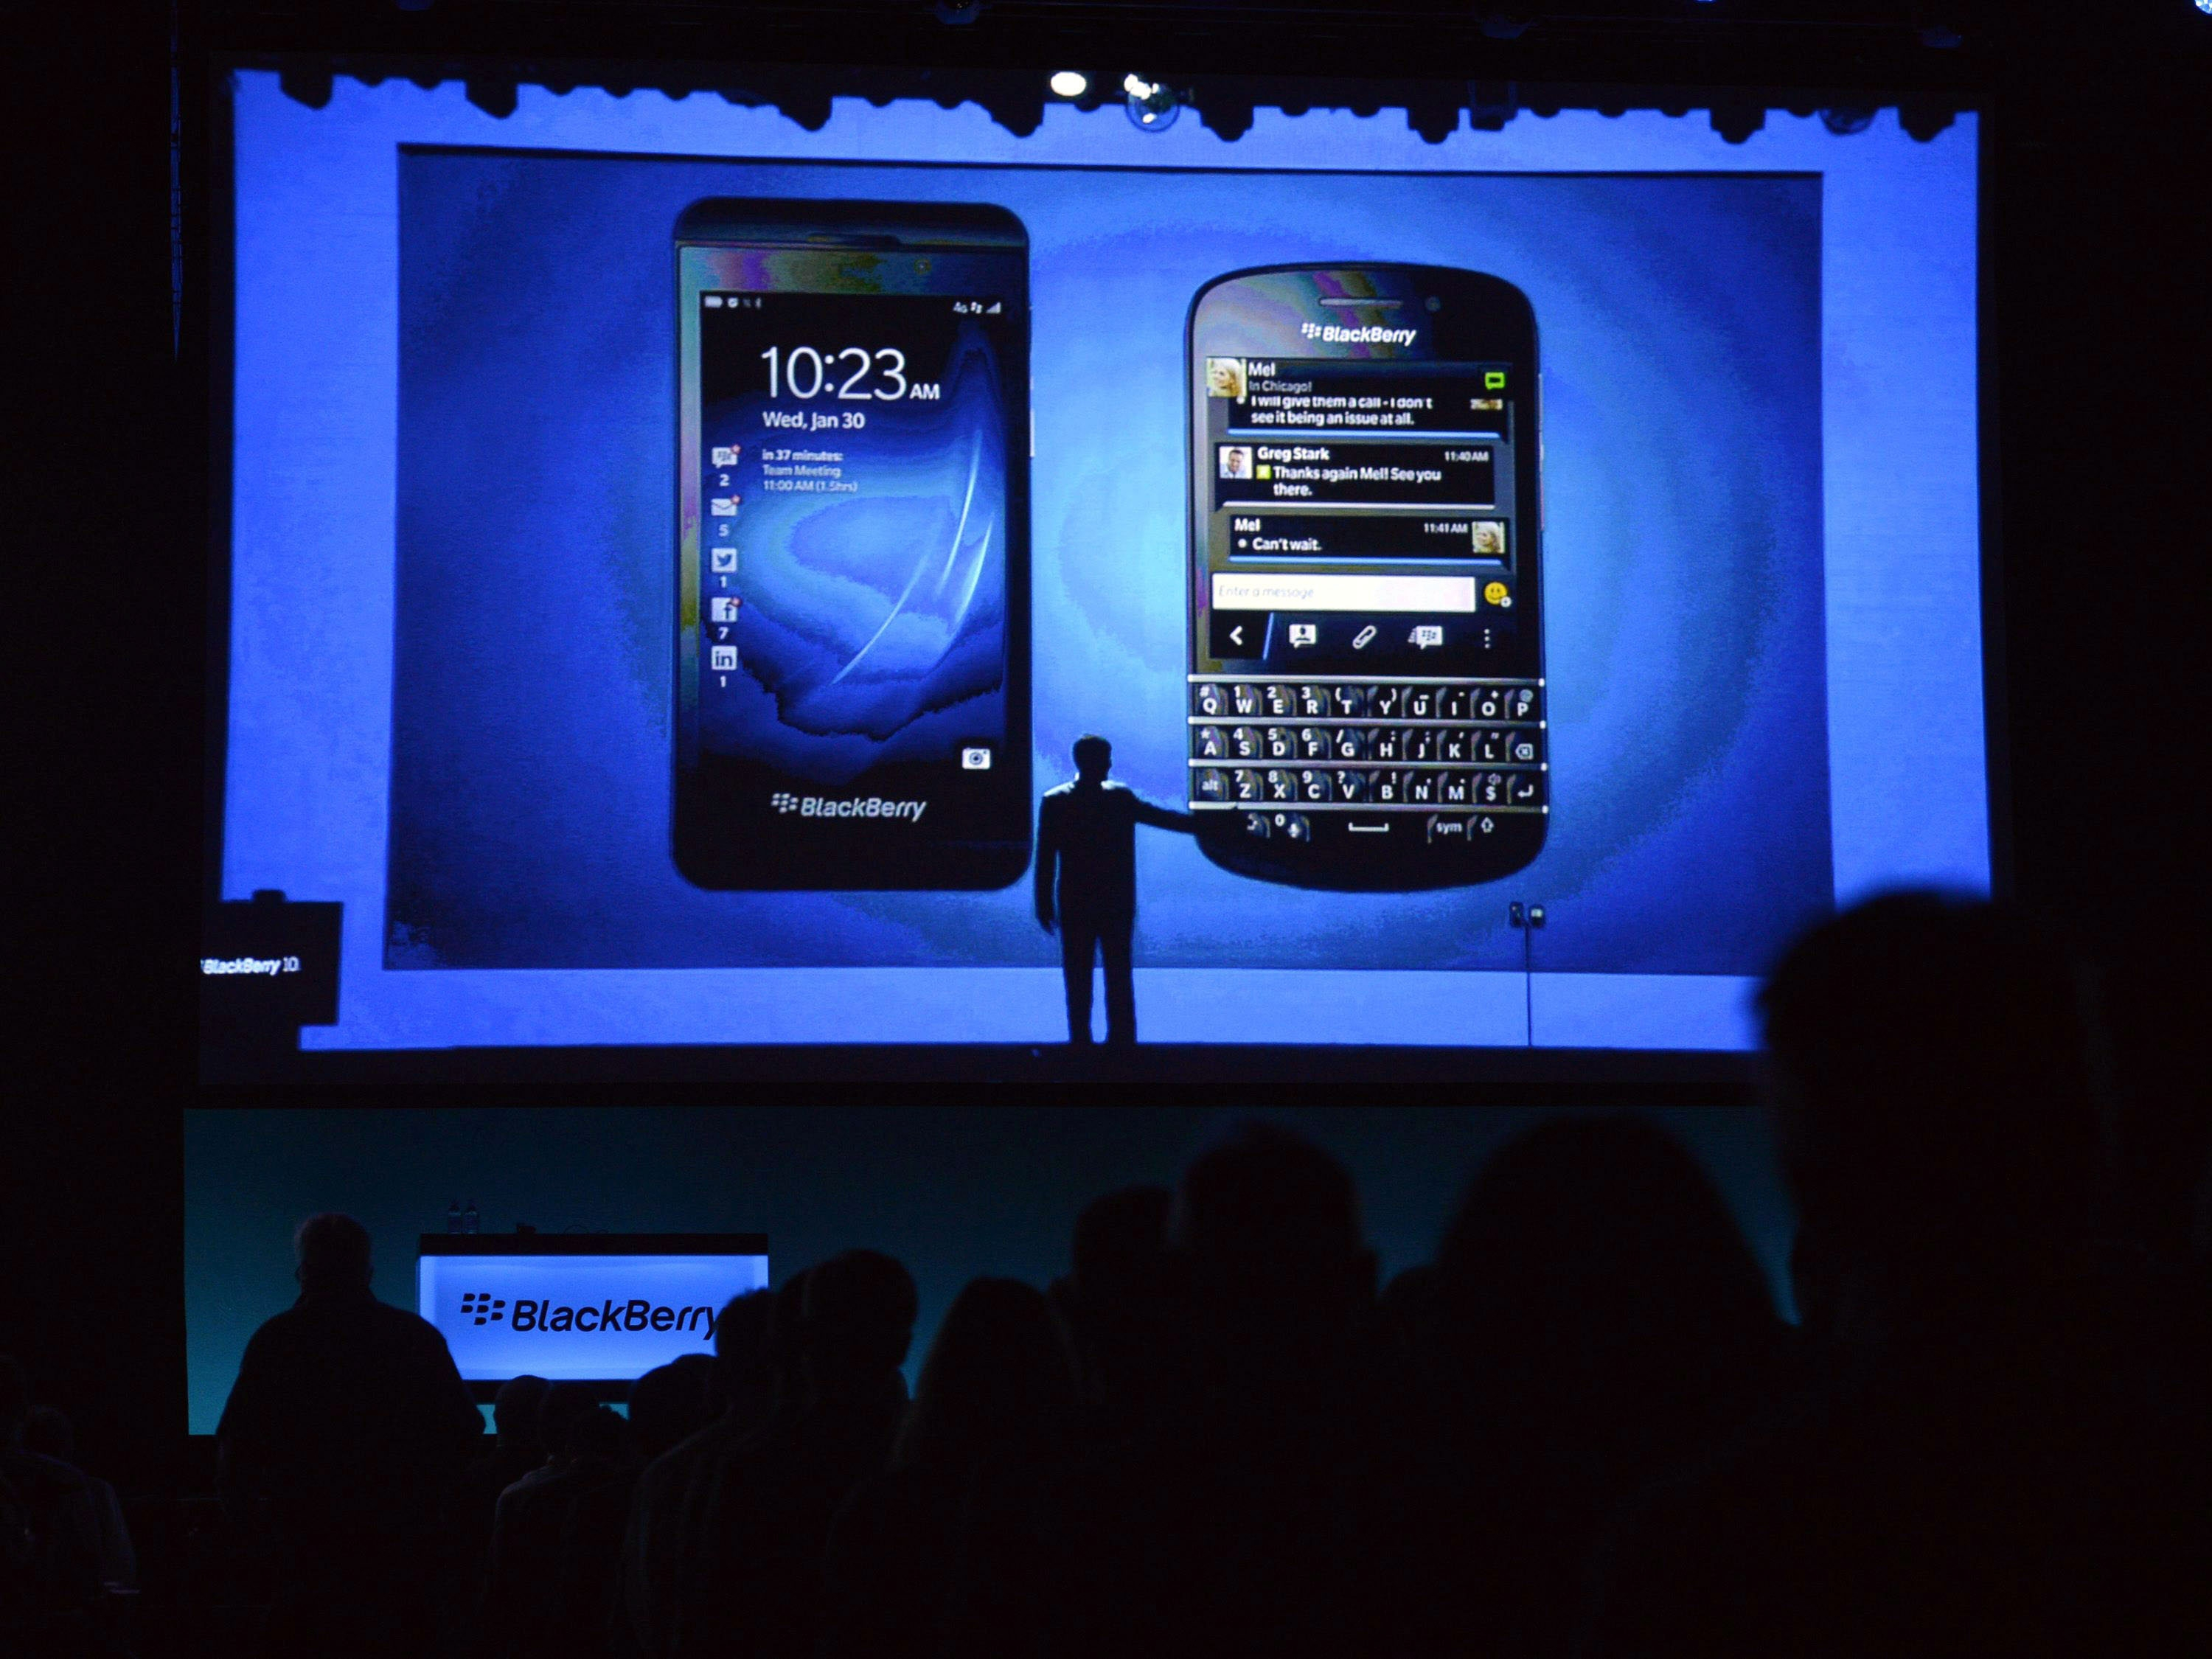 Thorsten Heins will step down as CEO of BlackBerry, it was announced Monday. John S. Chen will serve as chairman of the board of directors and interim CEO.